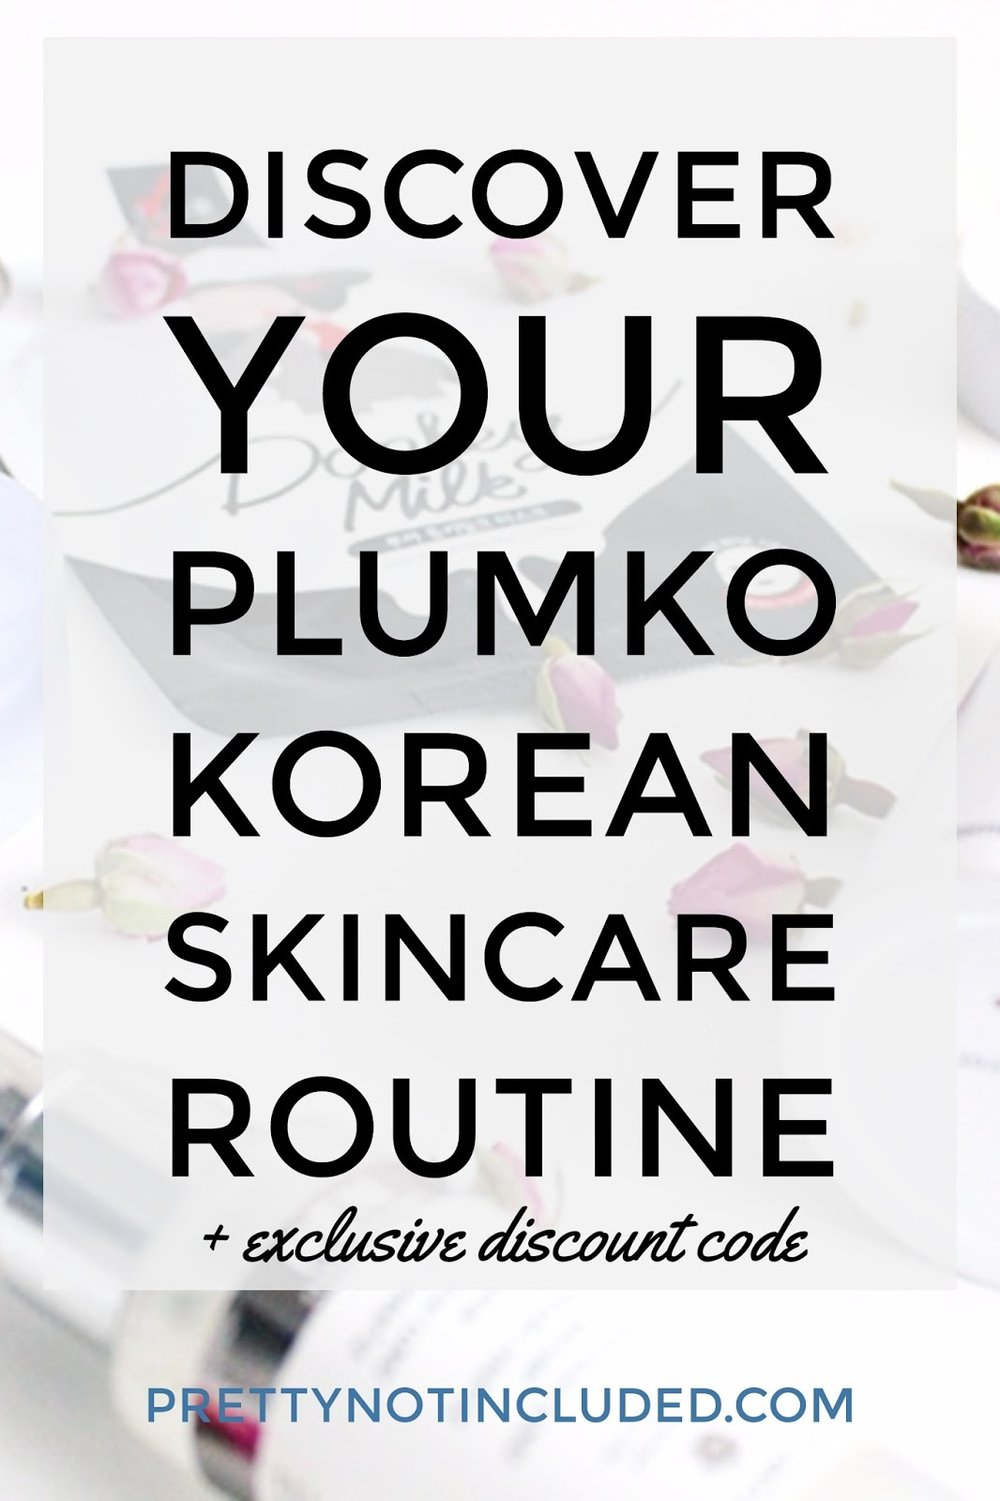 PLUMKO Personalised Korean Skincare Routine